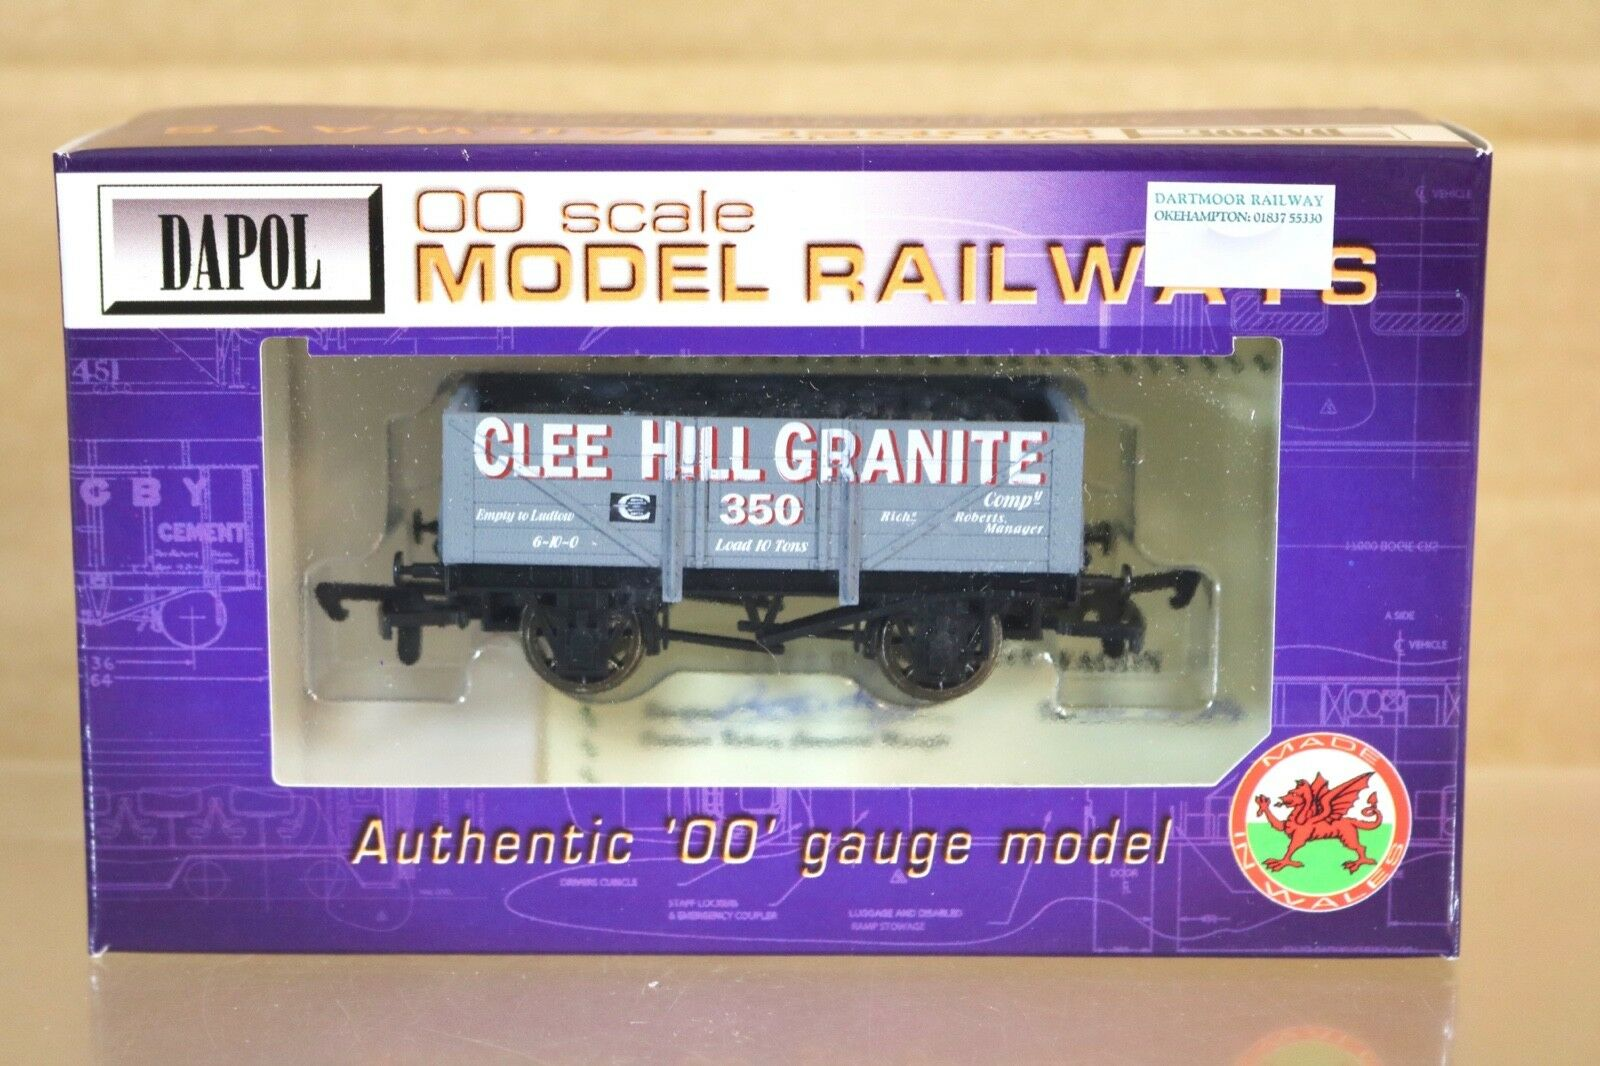 DAPOL CLEE HILL GRANITE 5 PLANK WAGON 350 with LOAD LIMITED EDITION nq